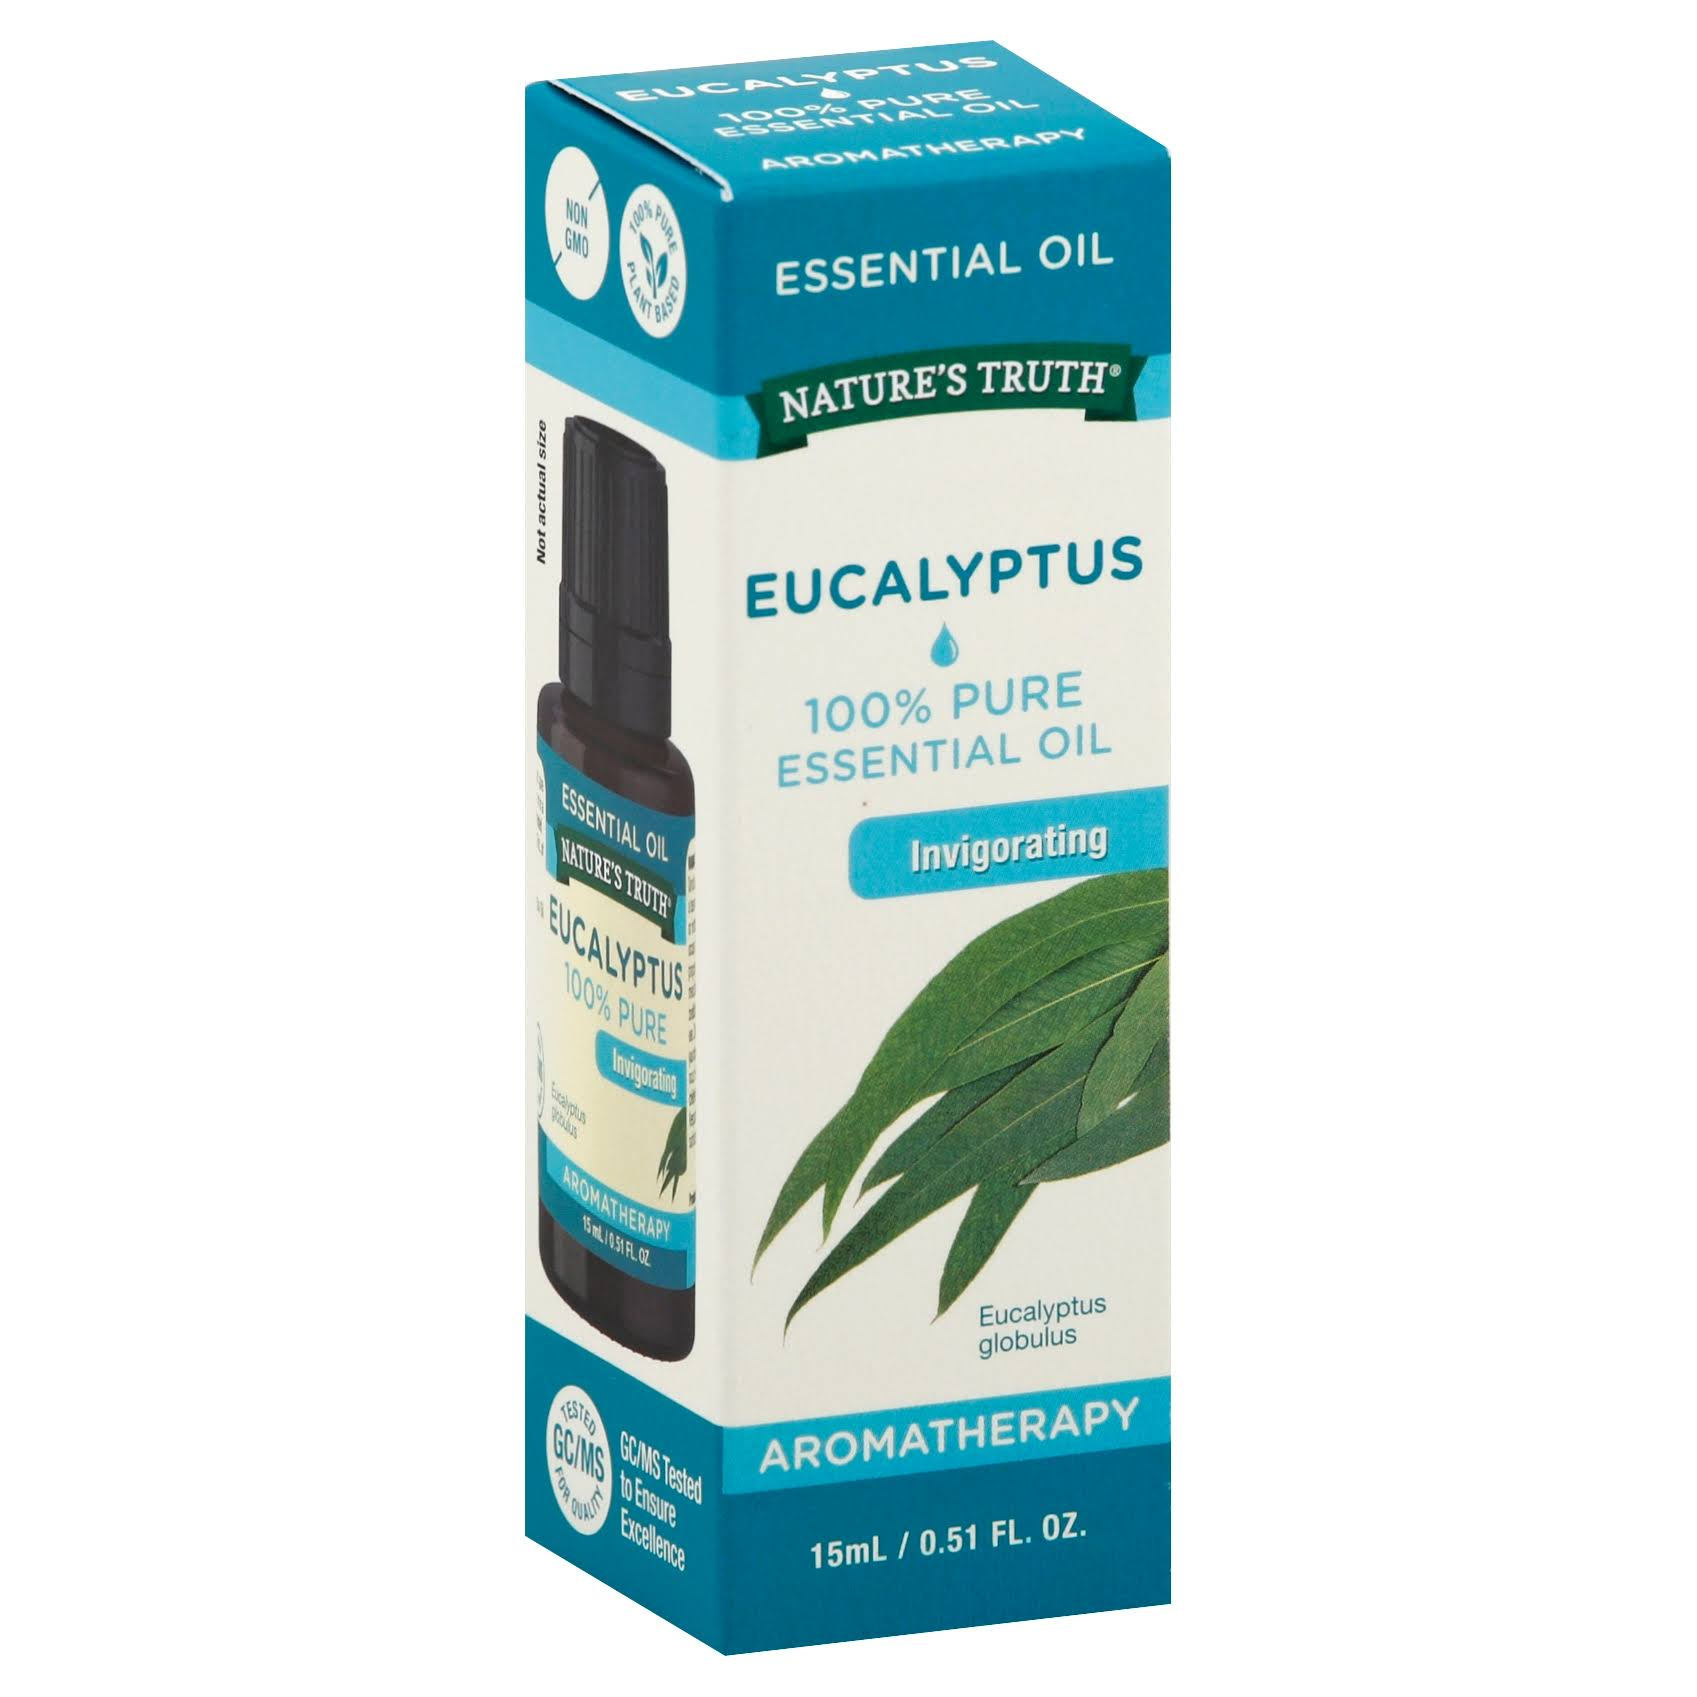 Nature's Truth Aromatherapy 100% Pure Eucalyptus Essential Oil - 15ml